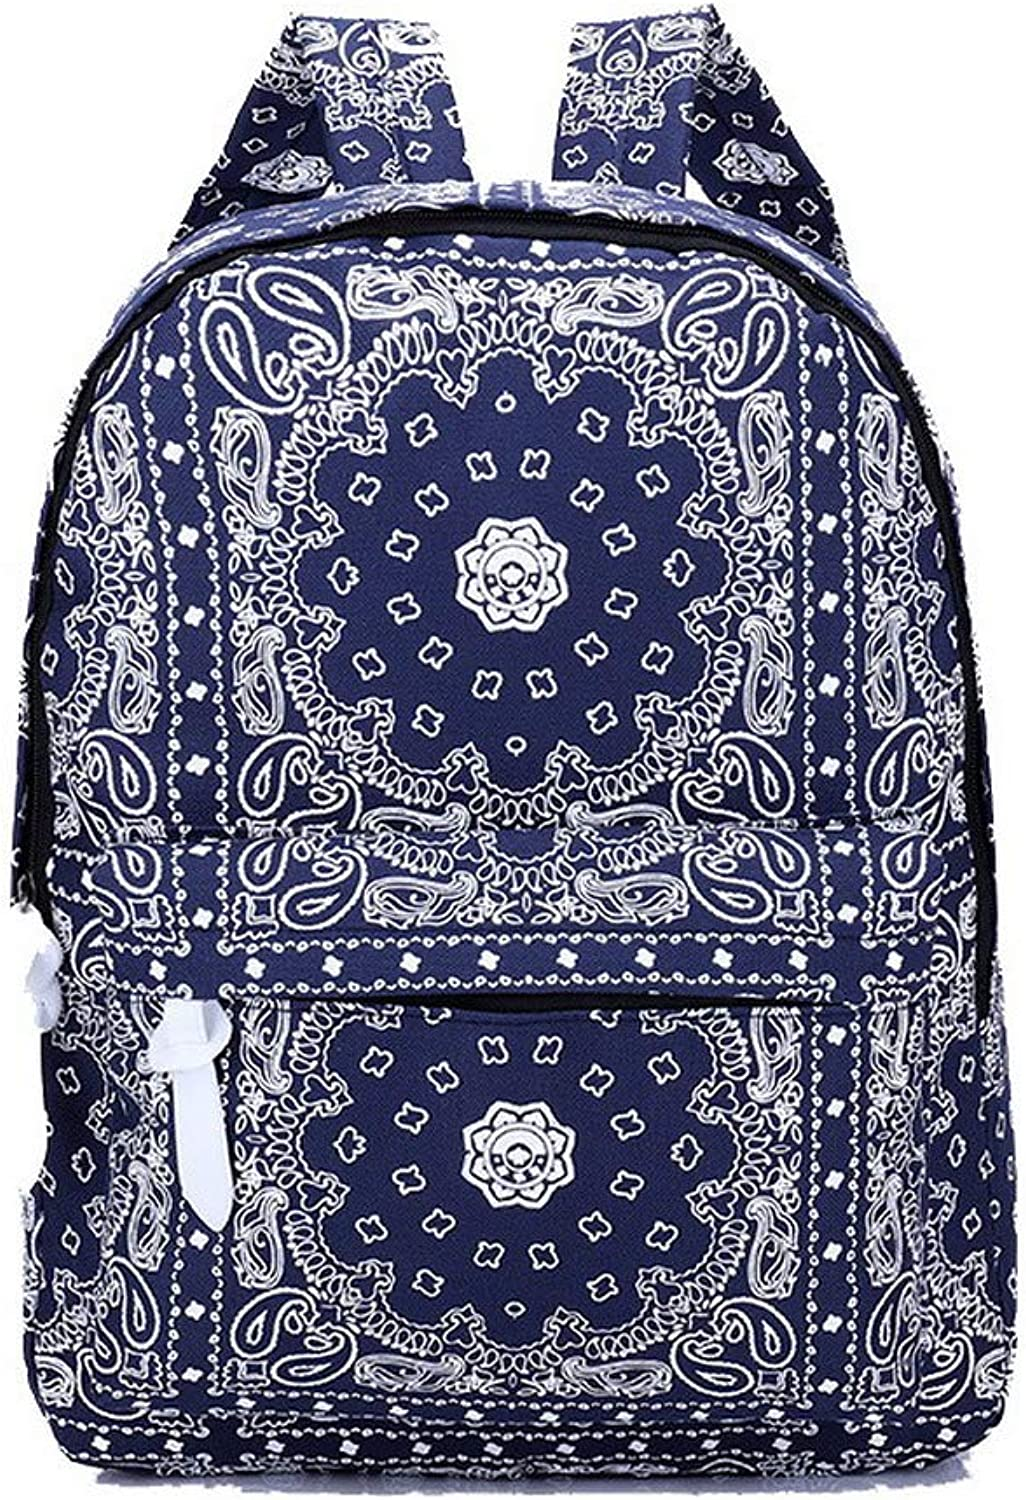 AmoonyFashion Women's Tote Bags Casual Canvas Shoulder Bags,BUTBS208874,Darkbluee